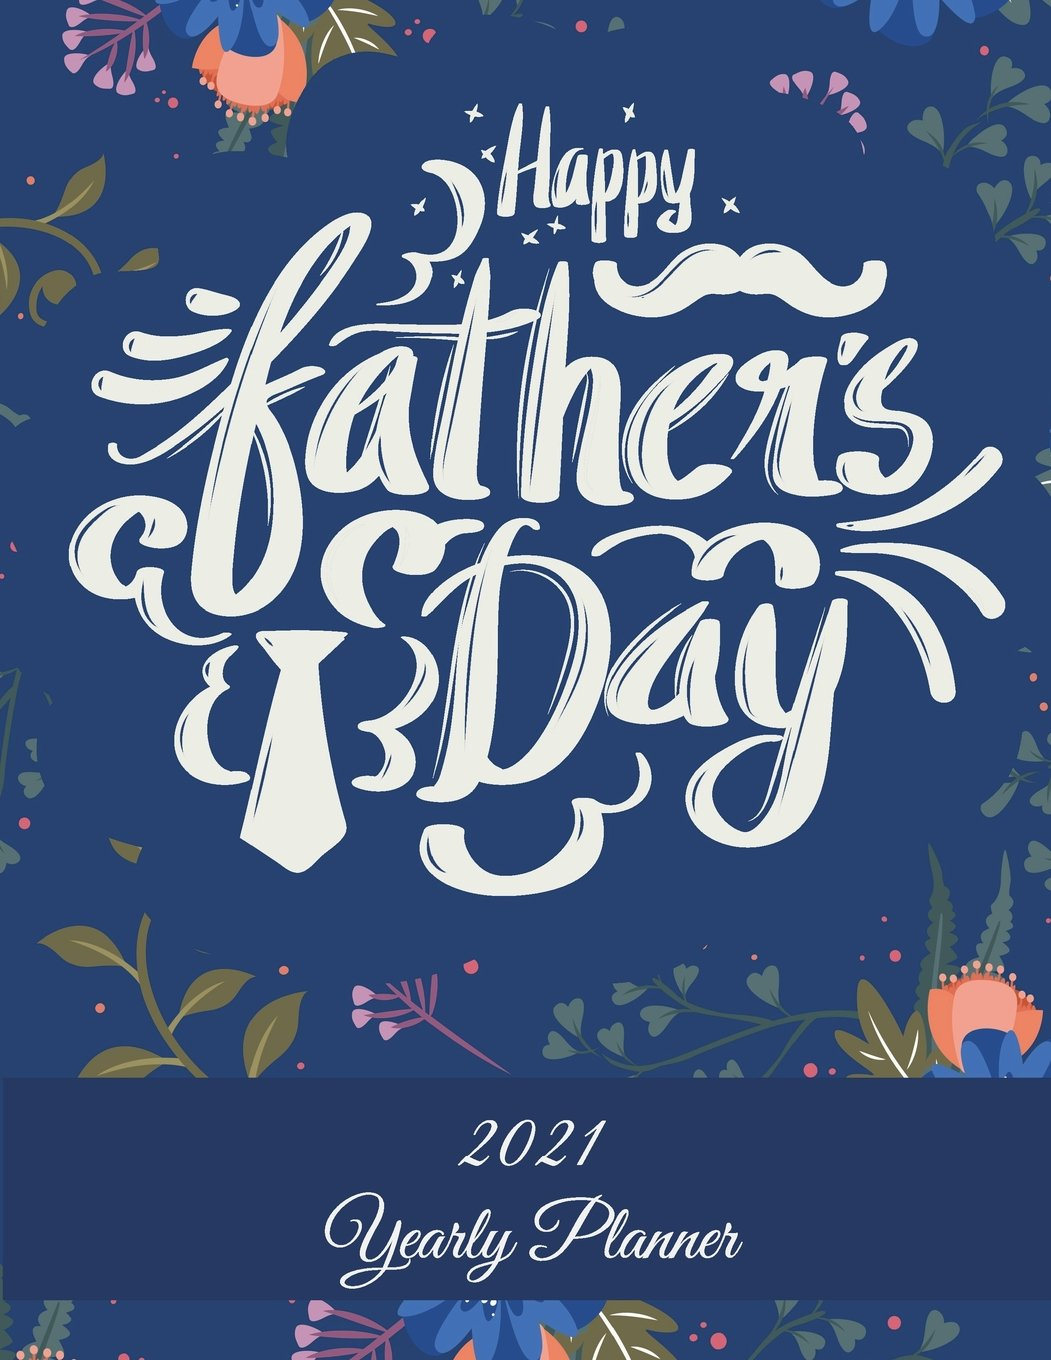 Fathers Day 2021 Calendar Happy Father's Day: 2021 Yearly Planner: Best Gift, Yearly